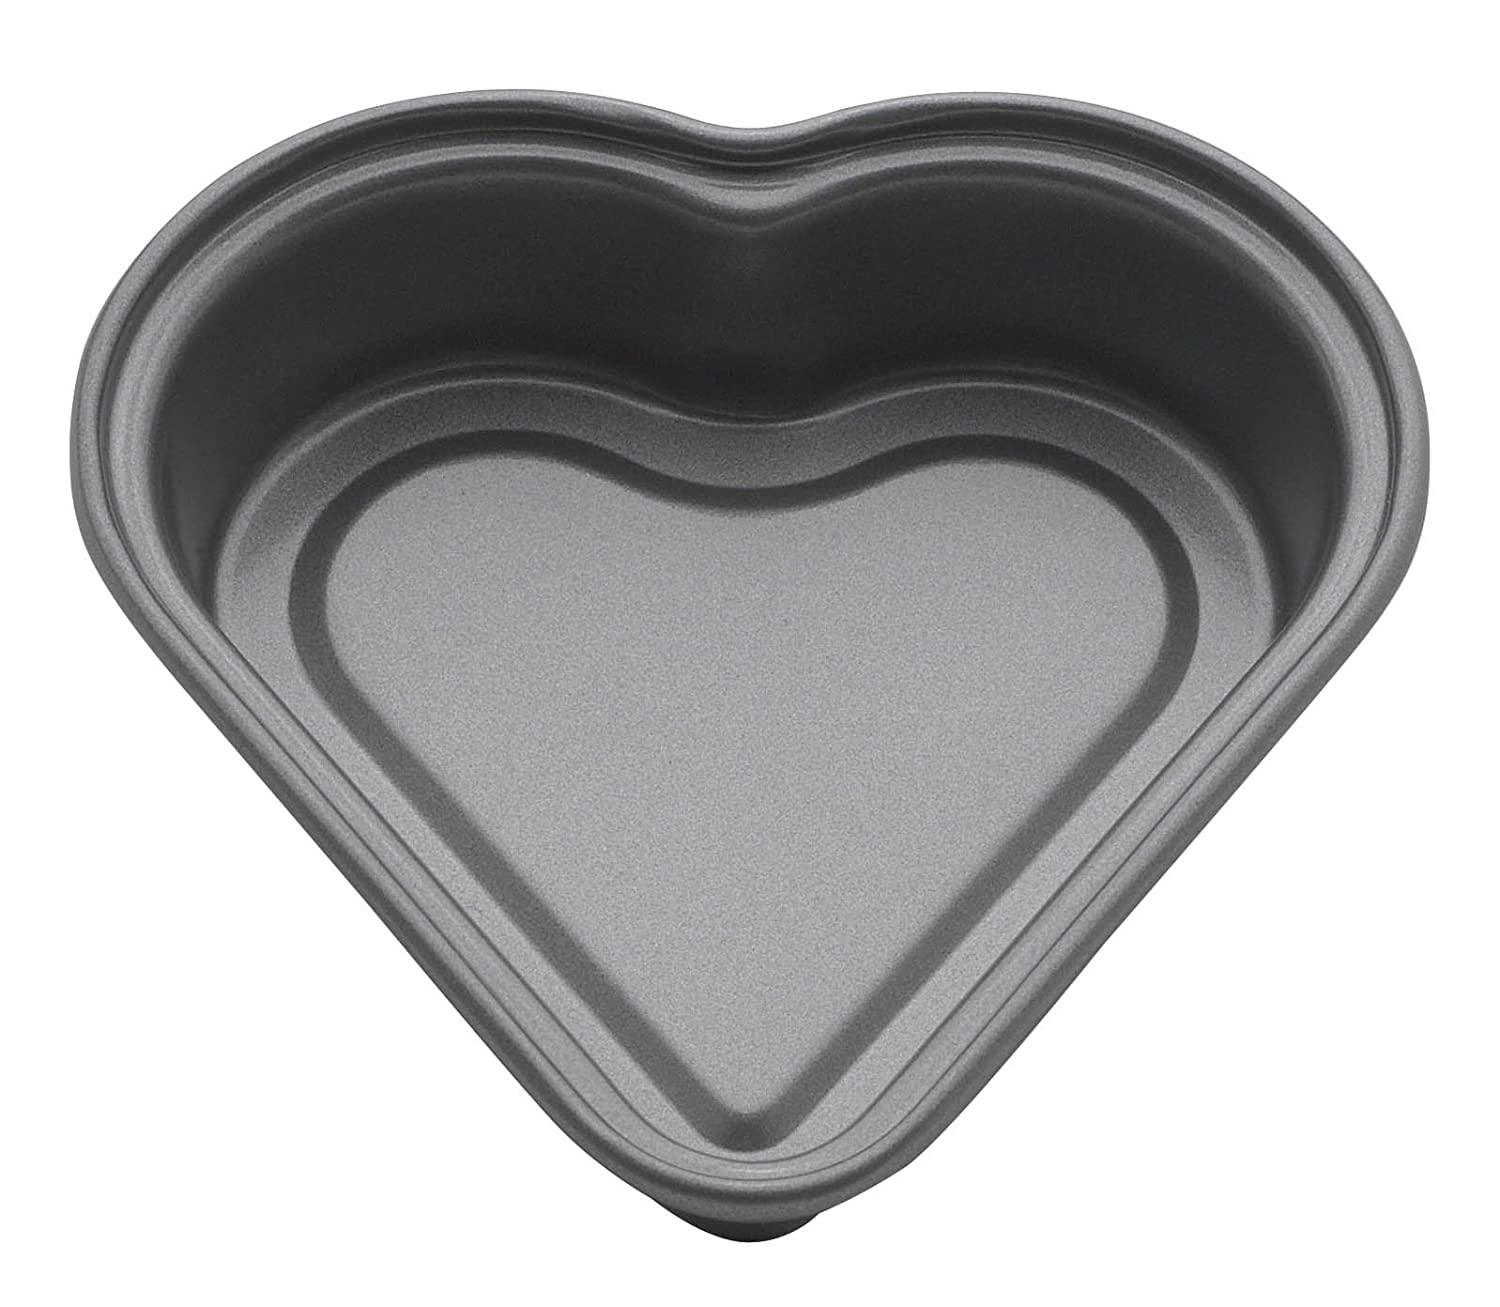 Mrs. Anderson's Baking 43712 Mini Heart Cake Pan, Carbon Steel with Quick-Release Non-Stick Coating